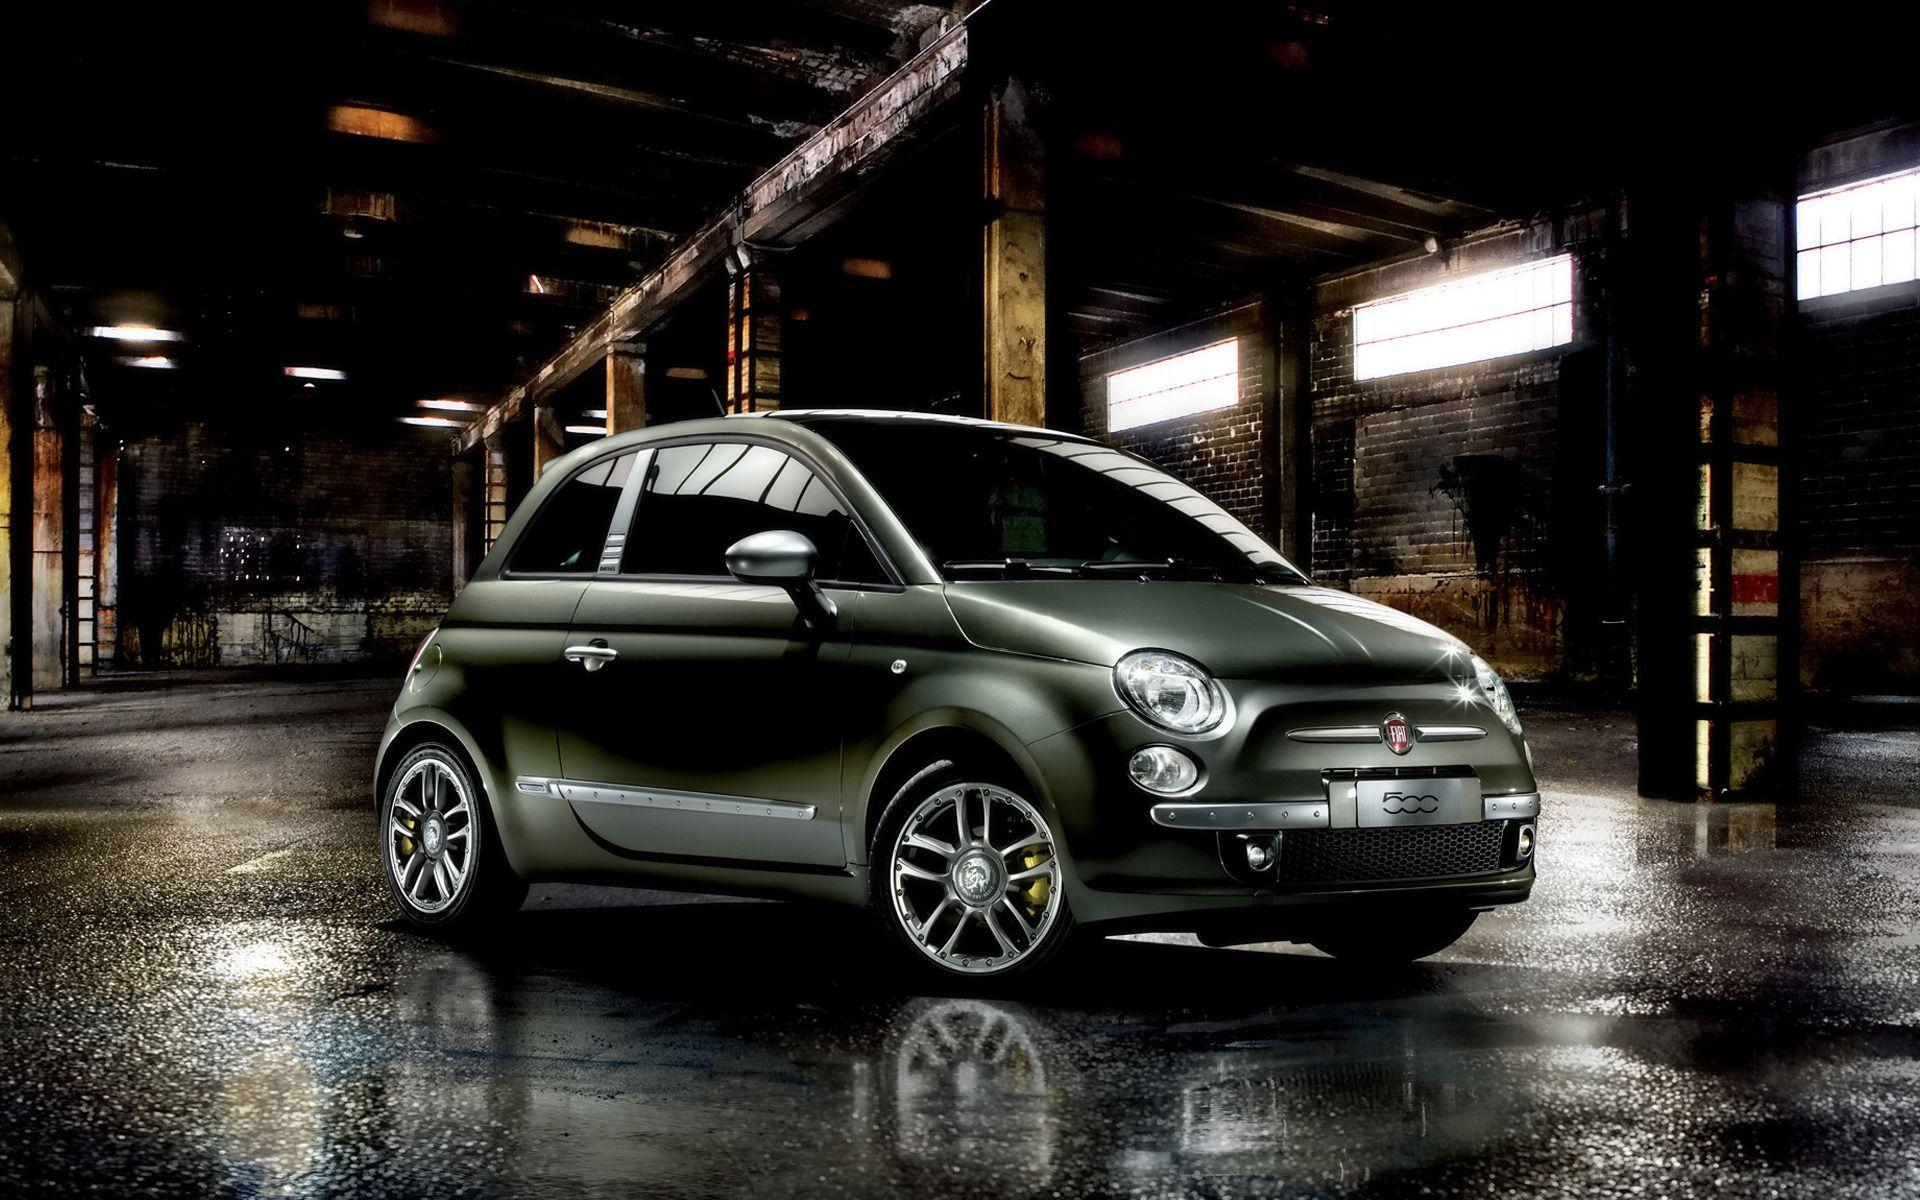 Fiat 500 Wallpaper Fiat Cars Wallpapers in jpg format for free download